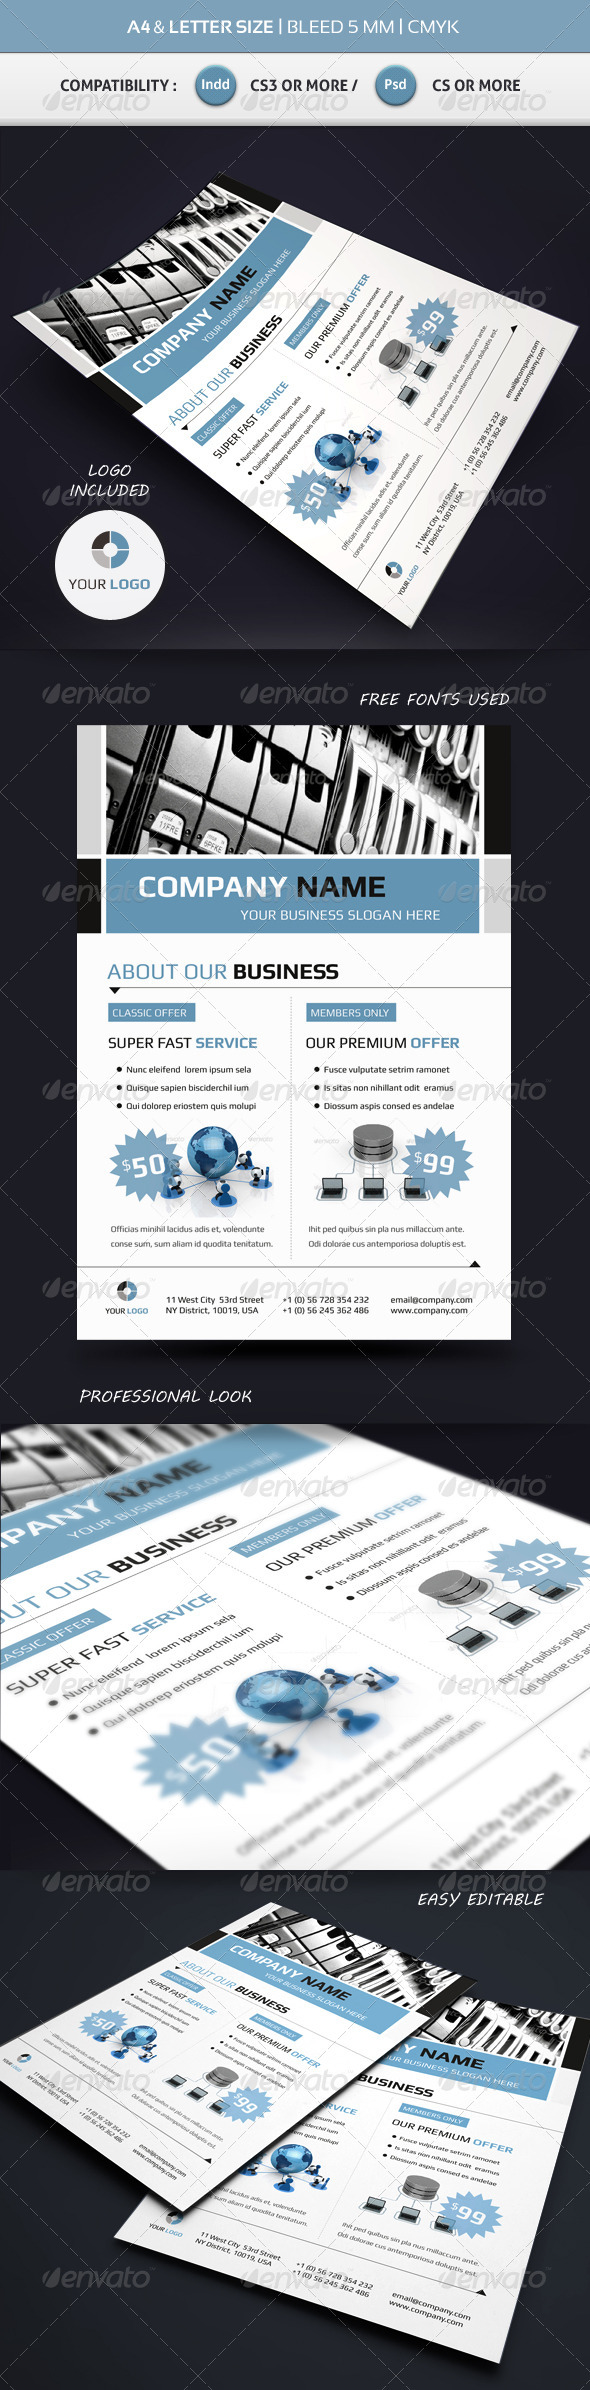 Corporate Commerce Flyer Template A4 & Letter - Corporate Flyers